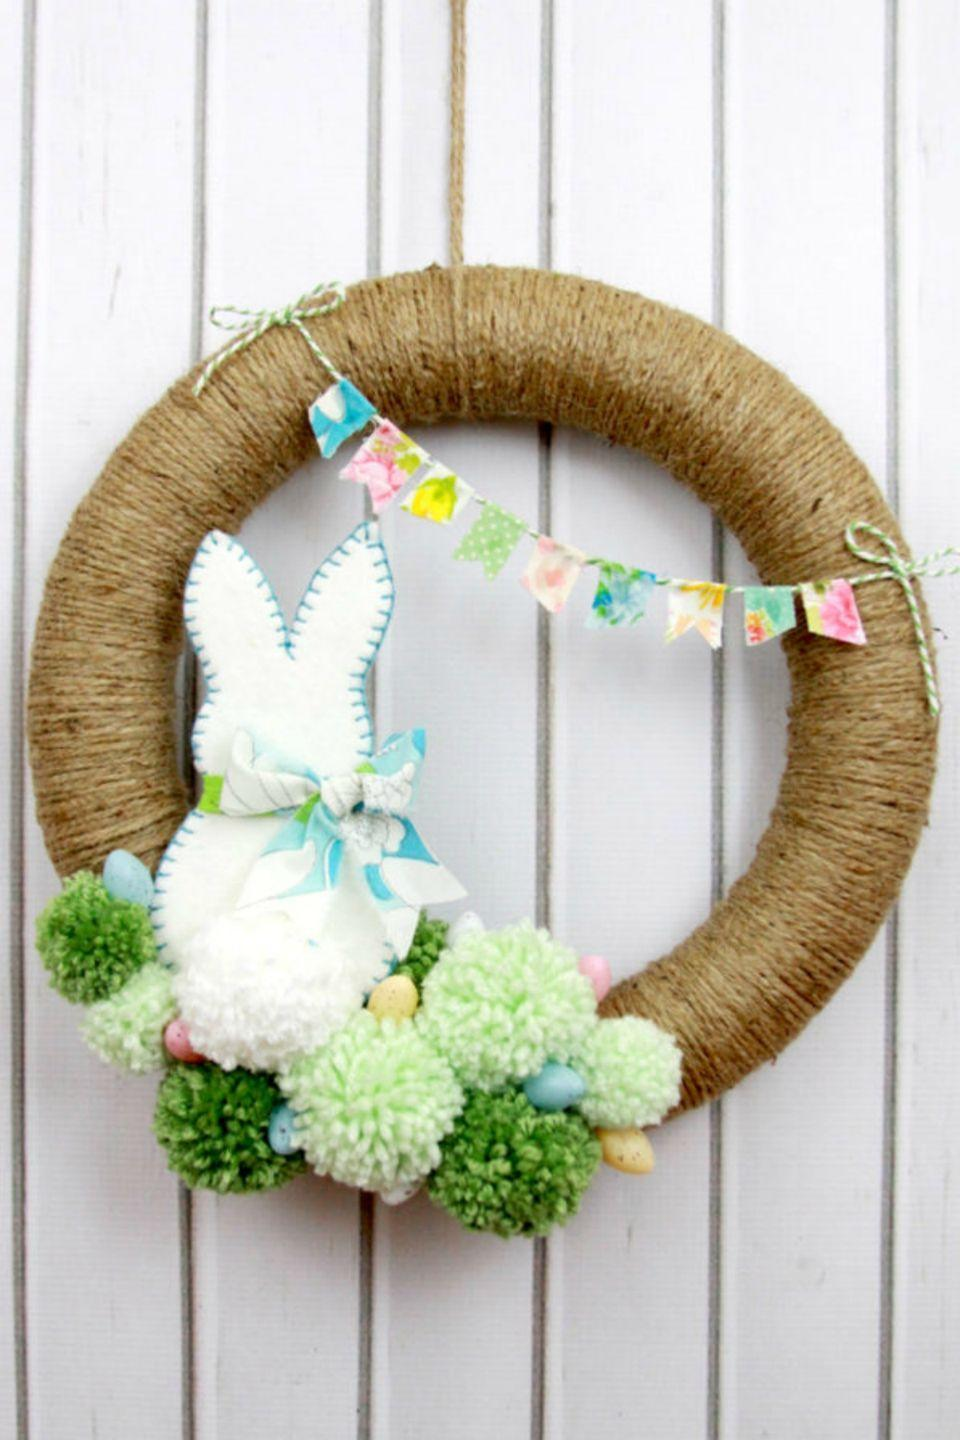 """<p>The felt bunny with his little pom pom tail is almost too cute to handle on this gorgeous Easter wreath.</p><p><strong>Get the tutorial at <a href=""""http://www.flamingotoes.com/2015/03/spring-bunny-pom-pom-wreath/"""" rel=""""nofollow noopener"""" target=""""_blank"""" data-ylk=""""slk:Flamingo Toes"""" class=""""link rapid-noclick-resp"""">Flamingo Toes</a>. </strong></p><p><a class=""""link rapid-noclick-resp"""" href=""""https://www.amazon.com/Pepperell-Assorted-Standard-Colors-Package/dp/B00114OW3U?tag=syn-yahoo-20&ascsubtag=%5Bartid%7C10050.g.4088%5Bsrc%7Cyahoo-us"""" rel=""""nofollow noopener"""" target=""""_blank"""" data-ylk=""""slk:SHOP POM-POMS"""">SHOP POM-POMS</a><strong><br></strong></p>"""